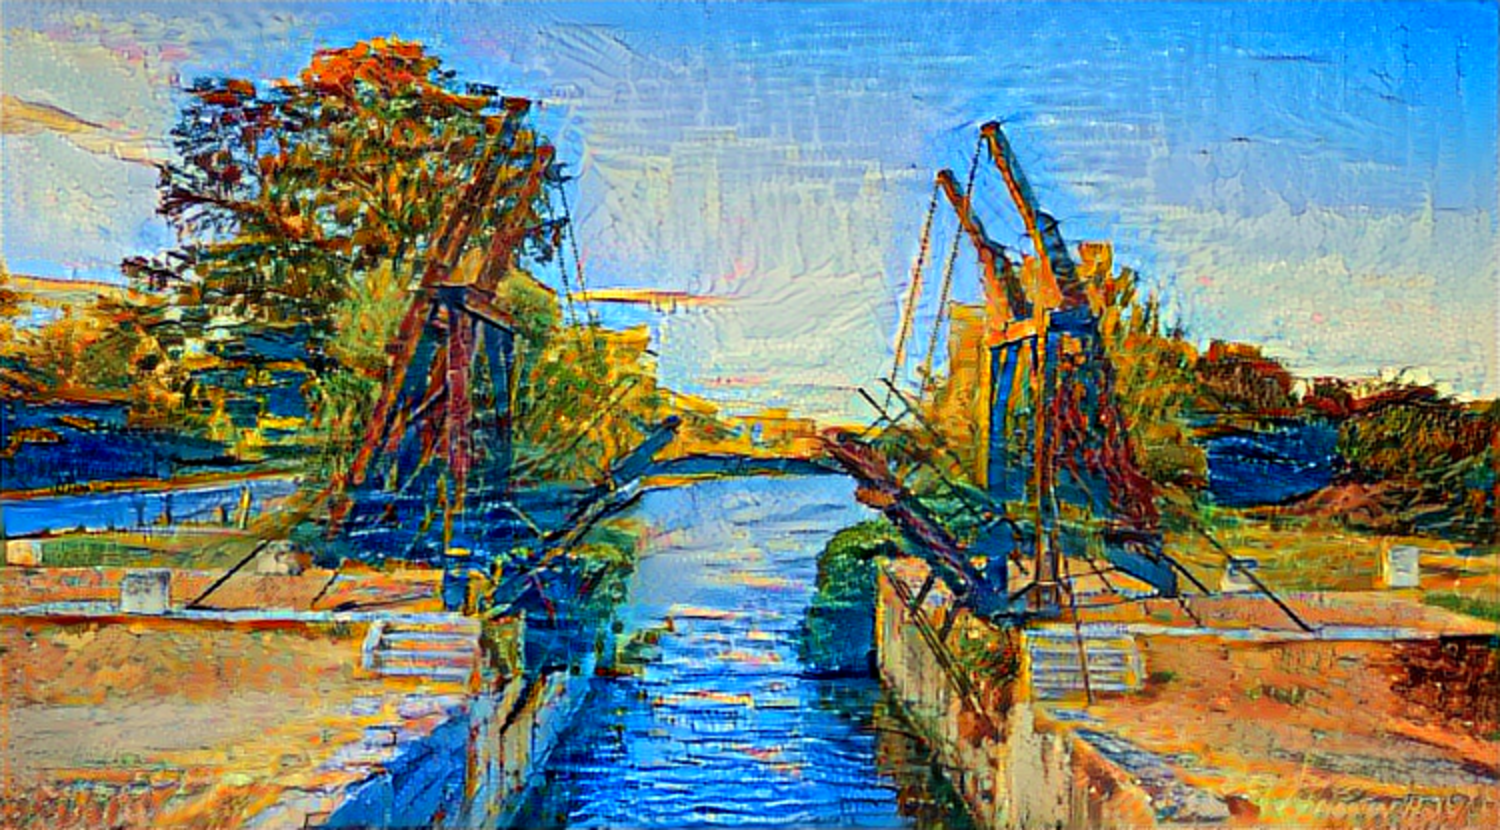 Result: The Langlois Bridge at Arles, Neural Style Transfer